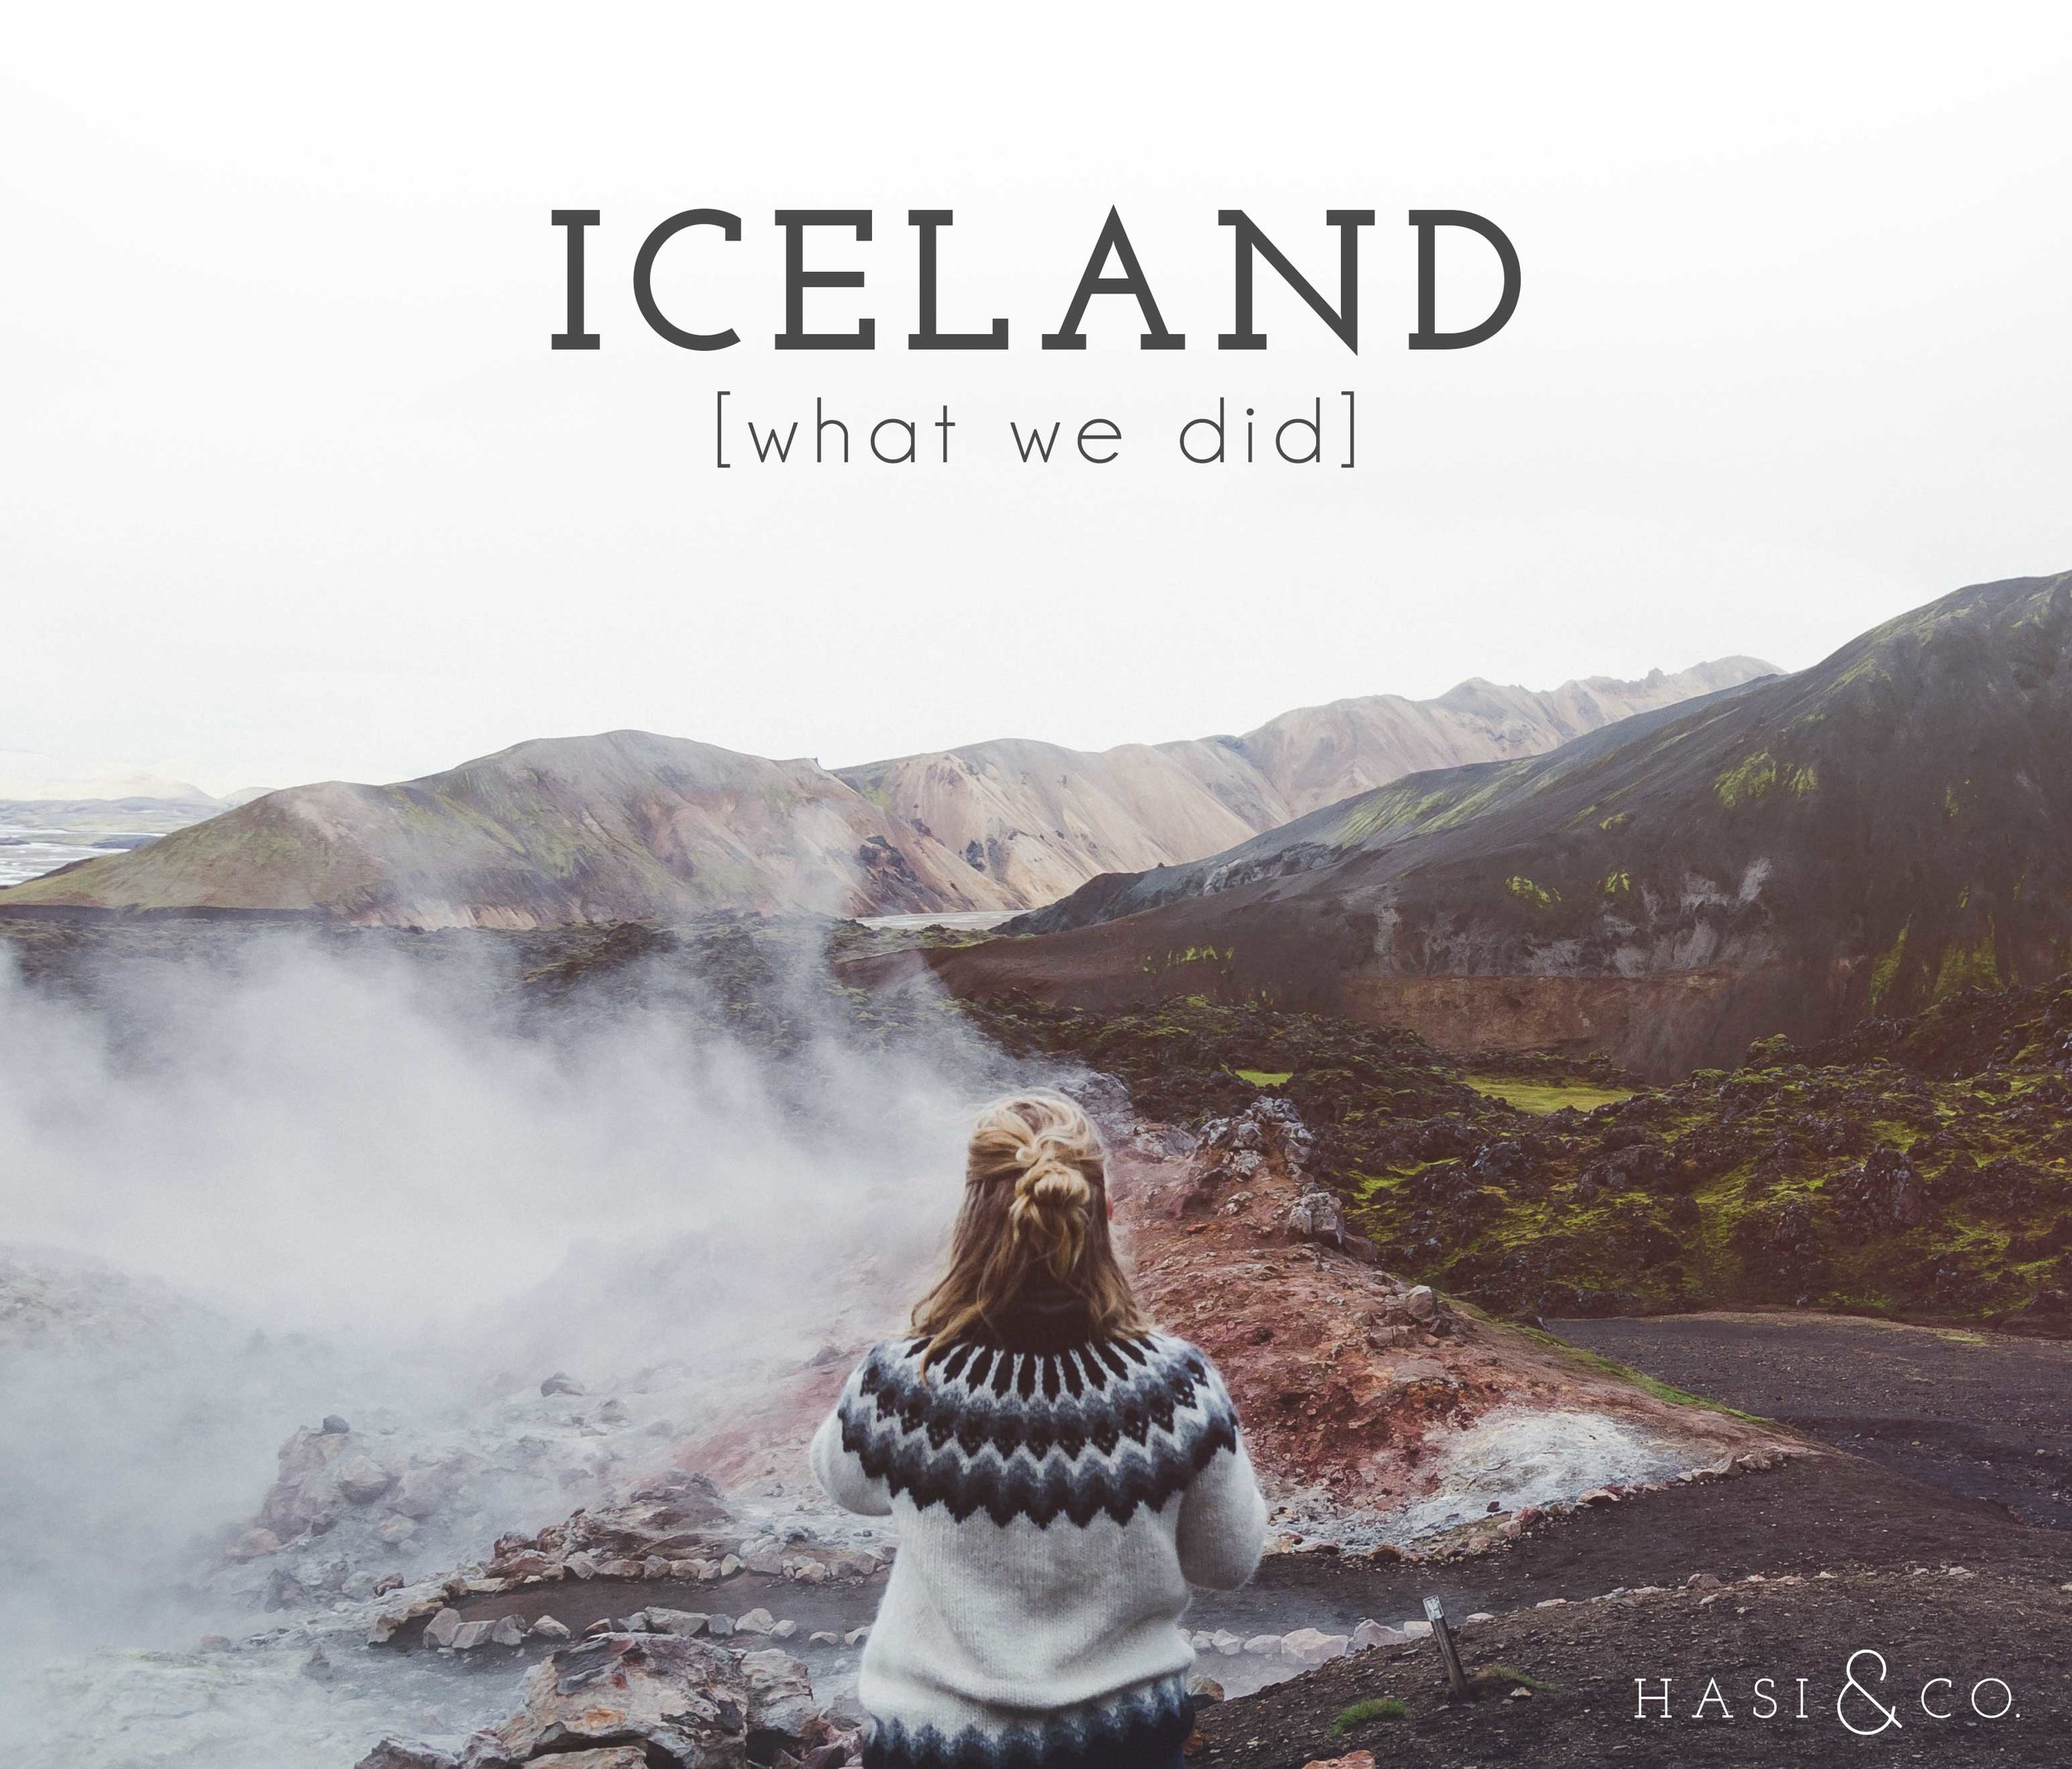 Note: How do I sum up our time in Iceland? Even while we were there I couldn't put much into words. Nothing can express the true experience. However, I am determined to write something, anything to remember our adventures. Please bear with my fumbling and the obscene length of this.